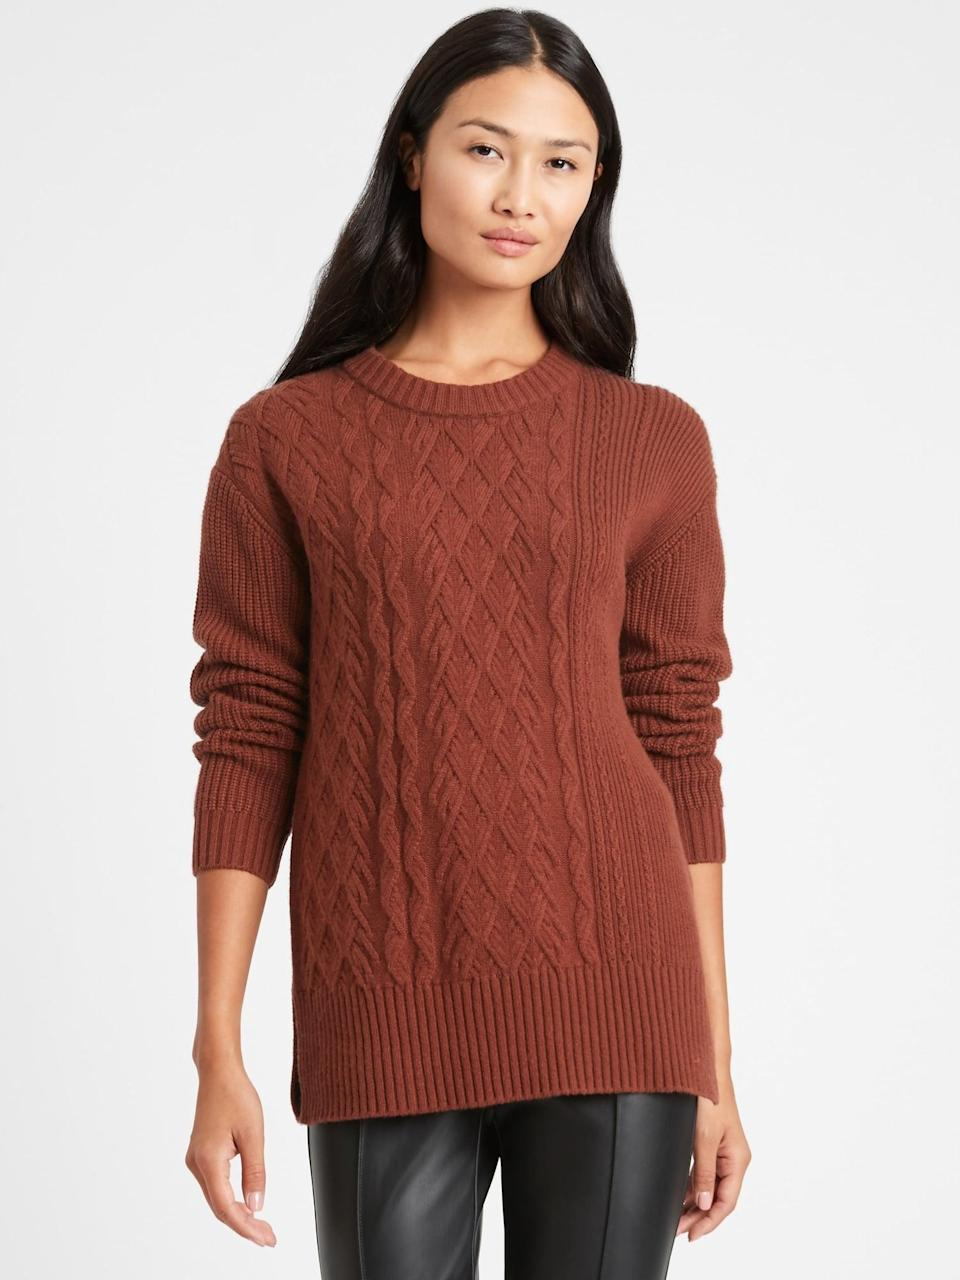 <p>We love a long sweater during the holidays like this <span>Banana Republic Cable-Knit Sweater Tunic</span> ($110). A classic cable knit style it also is very forgiving <em>post</em> Thanksgiving dinner!</p>